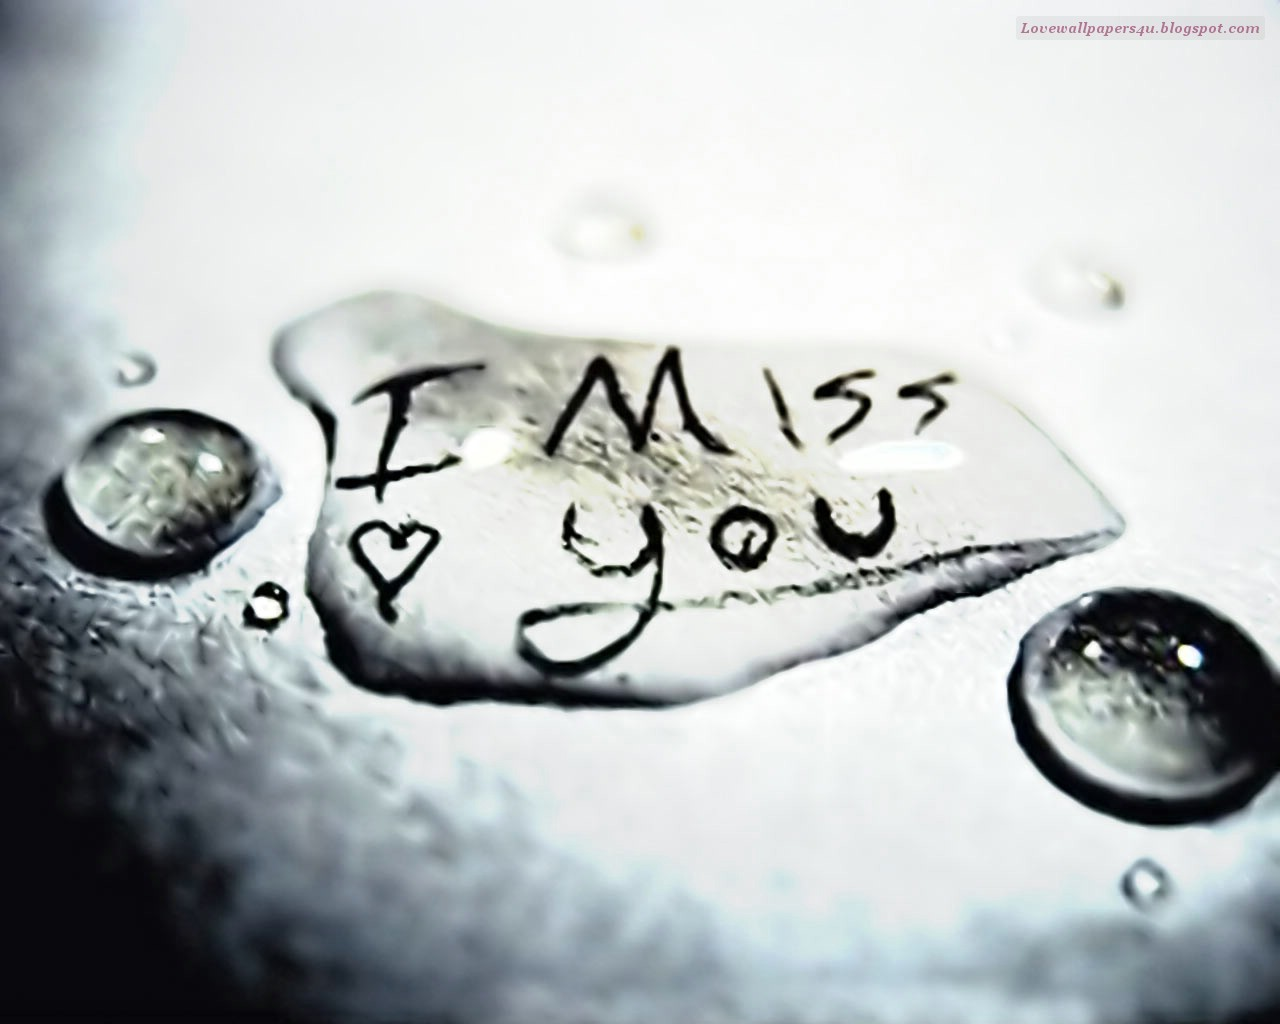 I Miss You Love Wallpapers Romantic Wallpapers - Stock ...